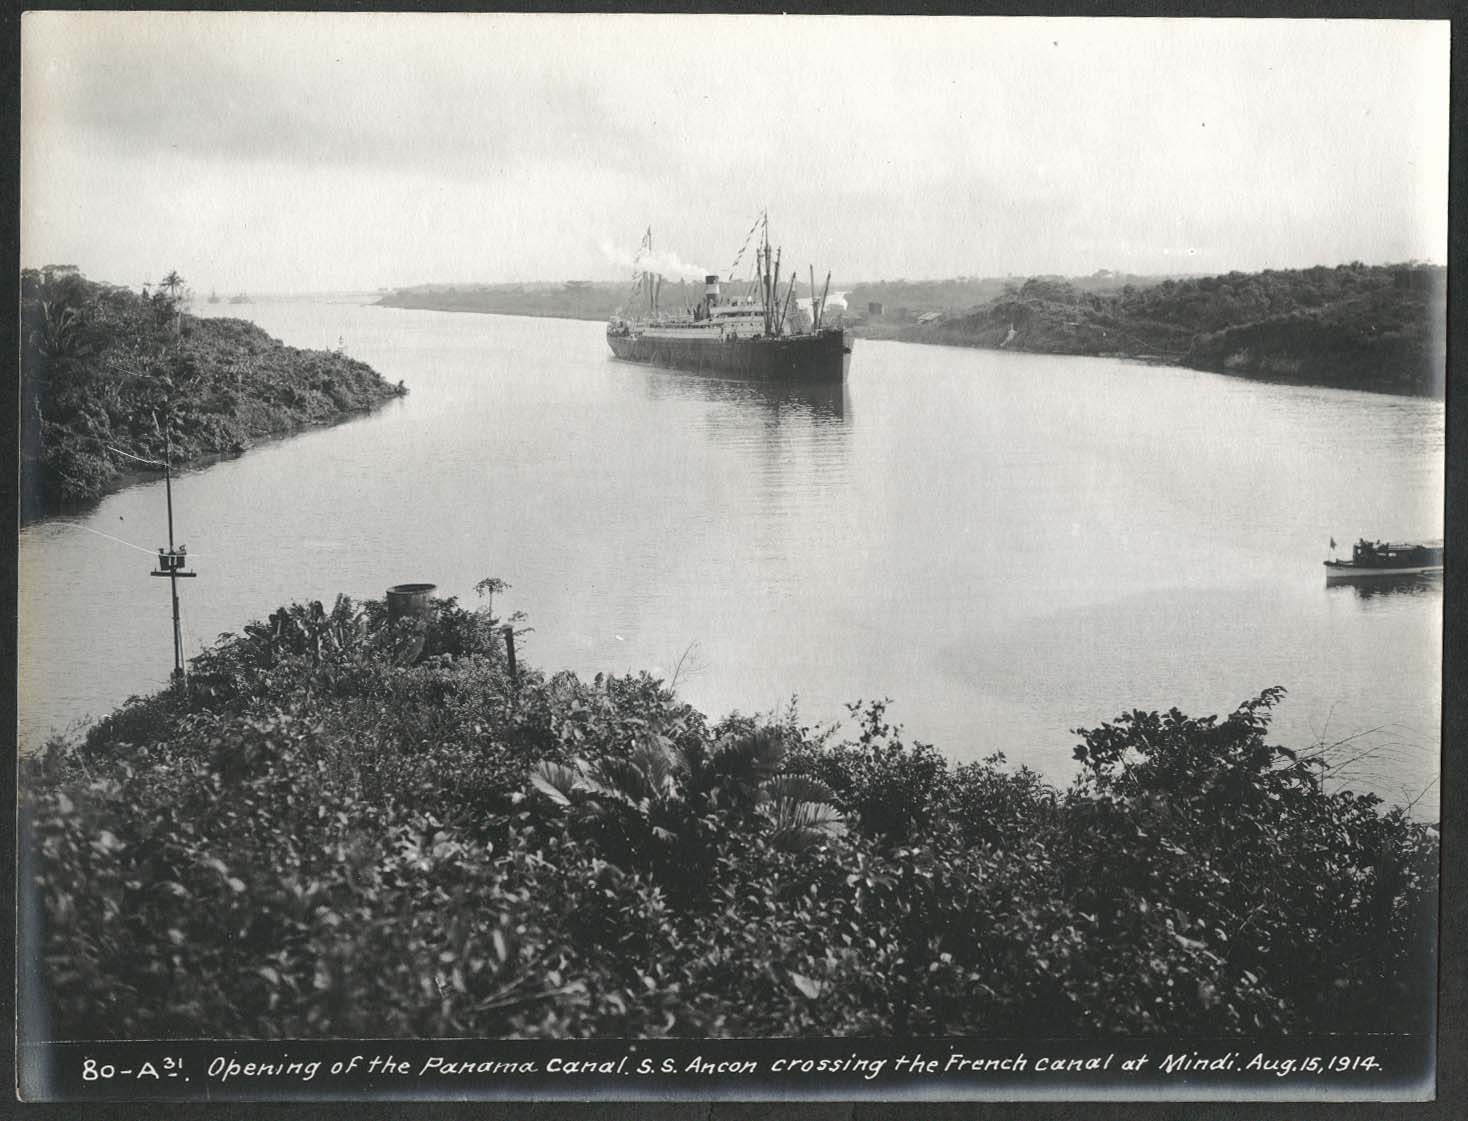 Image for Panama Canal photo 1914 Opening of canal S S Ancon crosses French Canal at Mindi